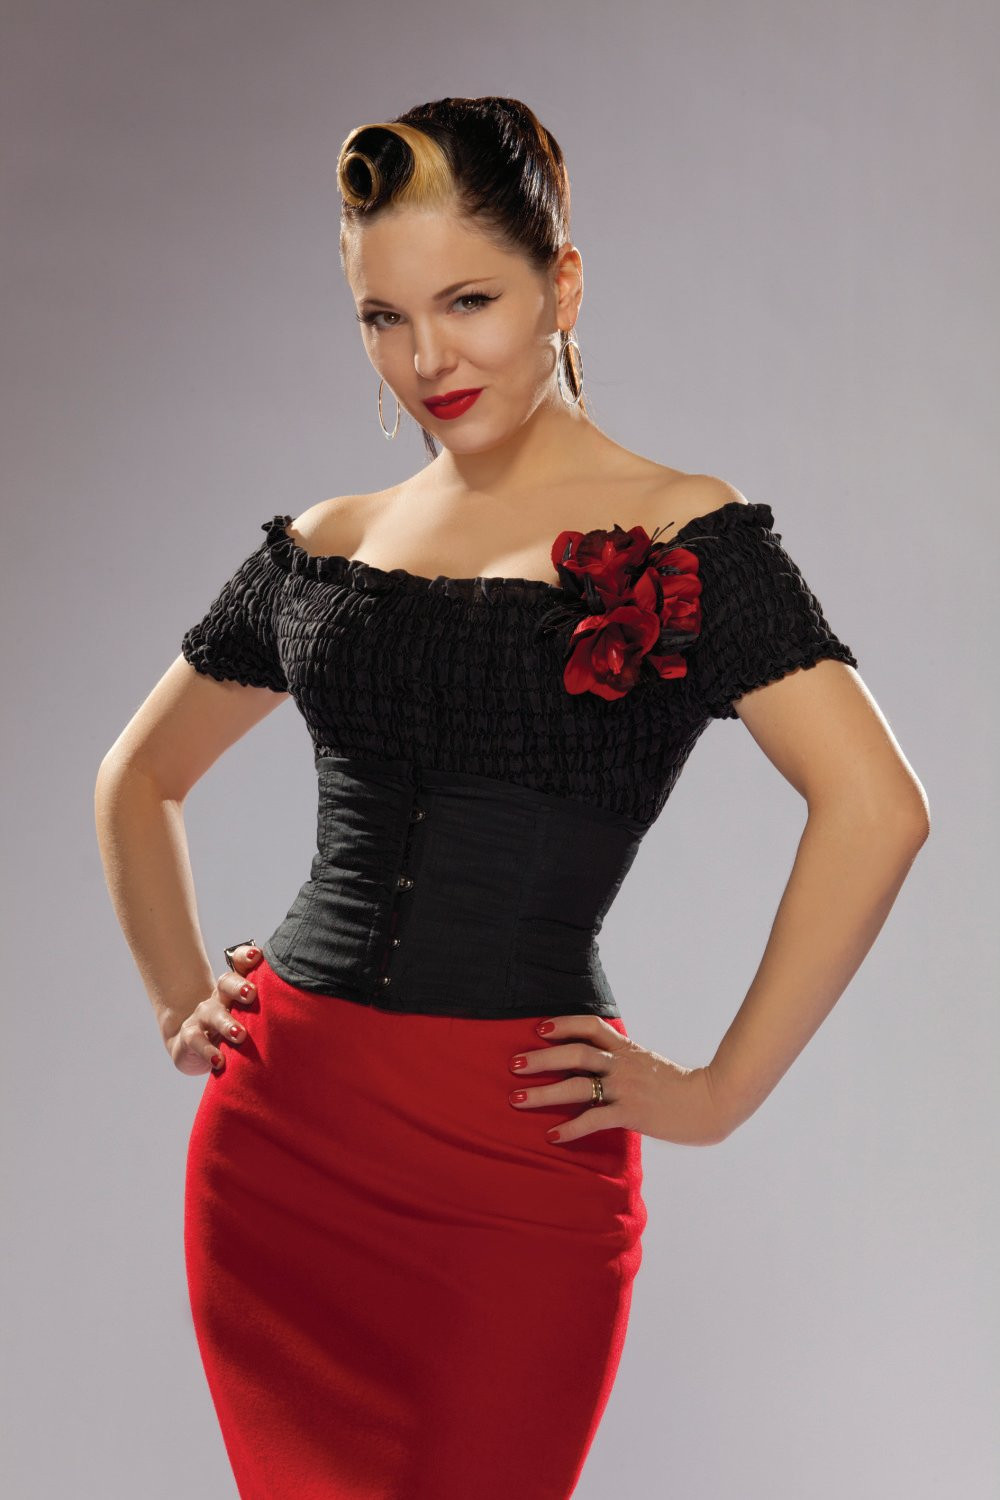 Imelda May tickets and 2020 tour dates